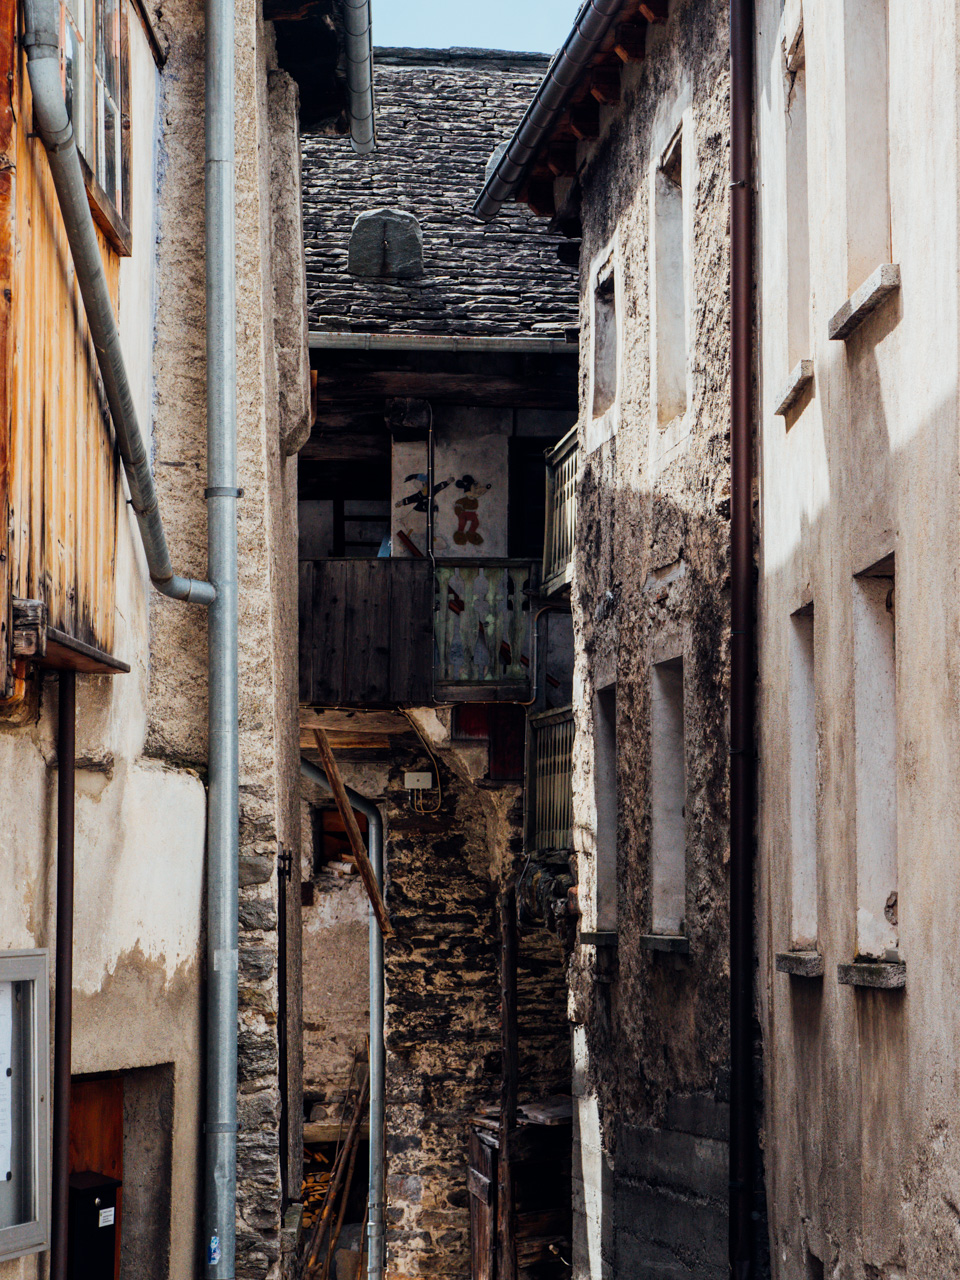 Fascinated with this tight alley.